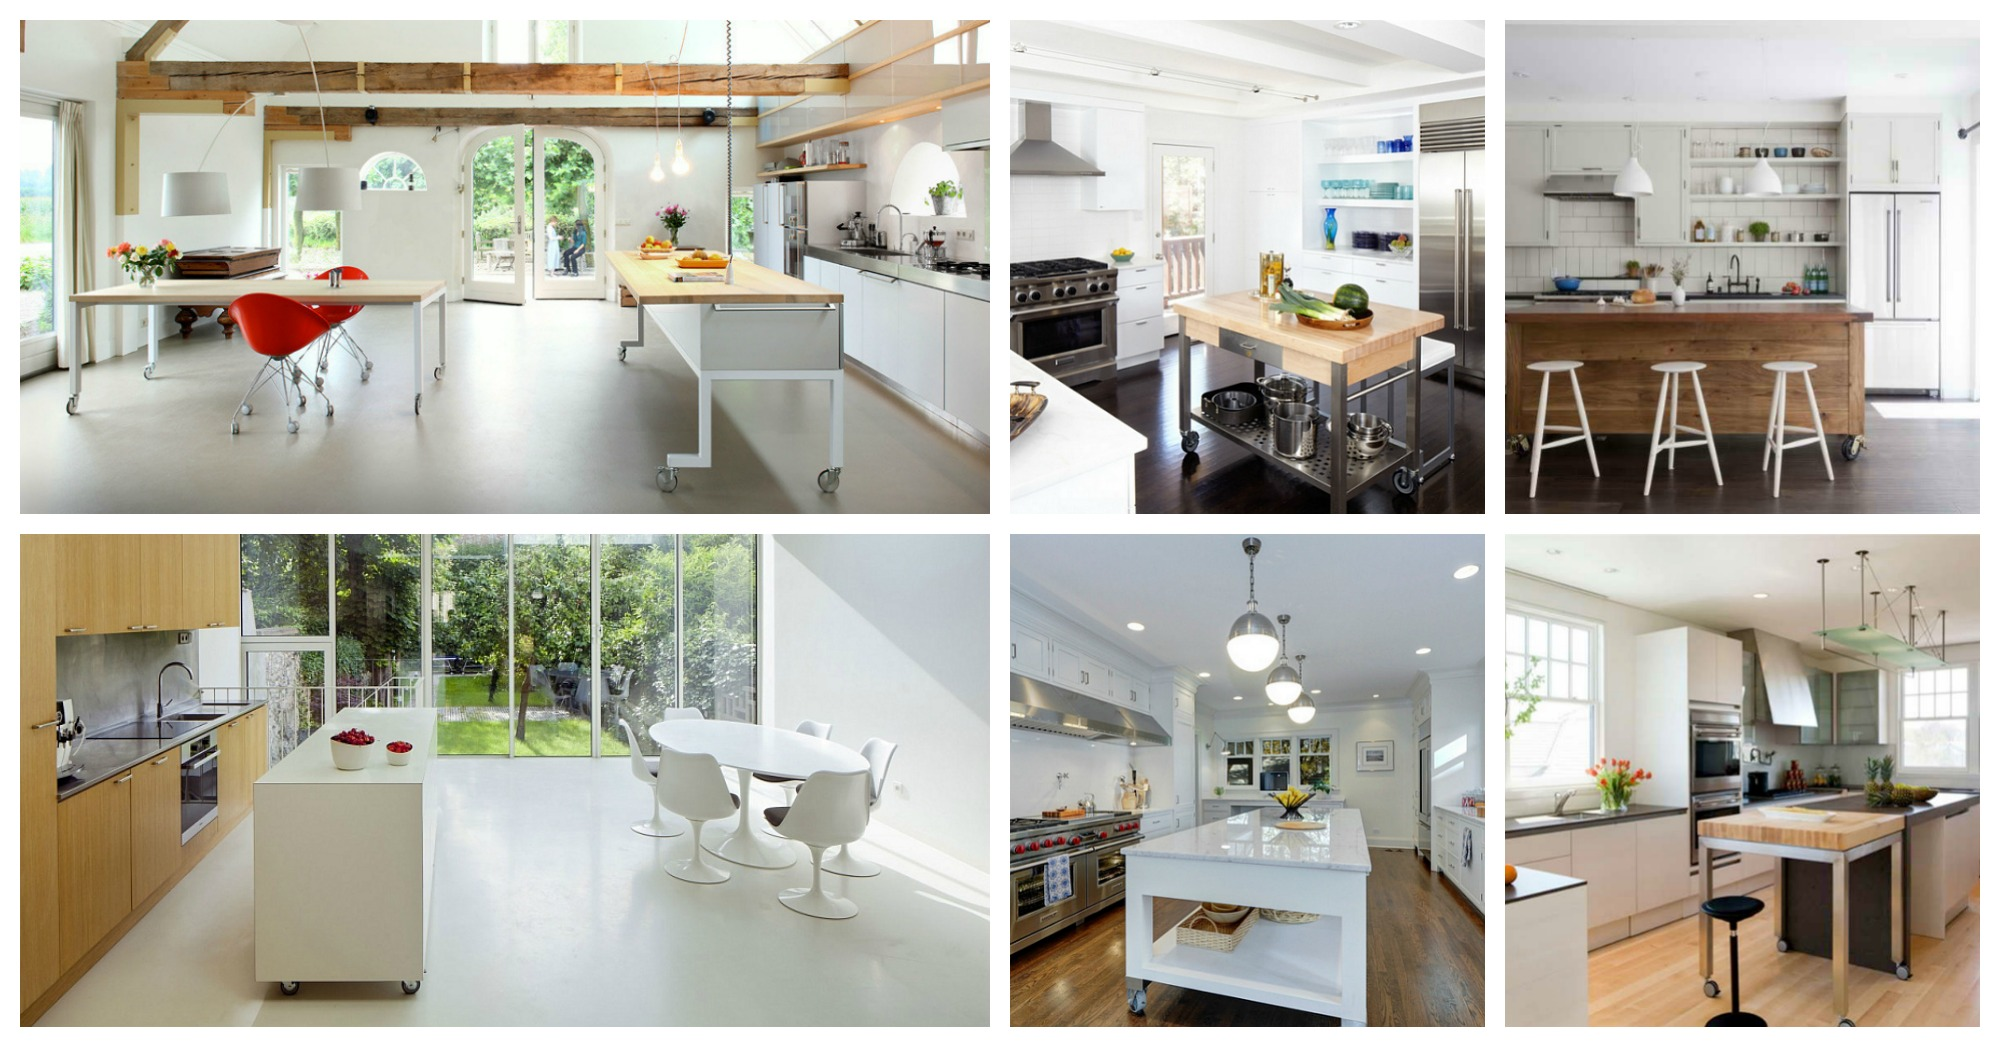 Functional Kitchen Islands On Casters That Can Be Moved Around